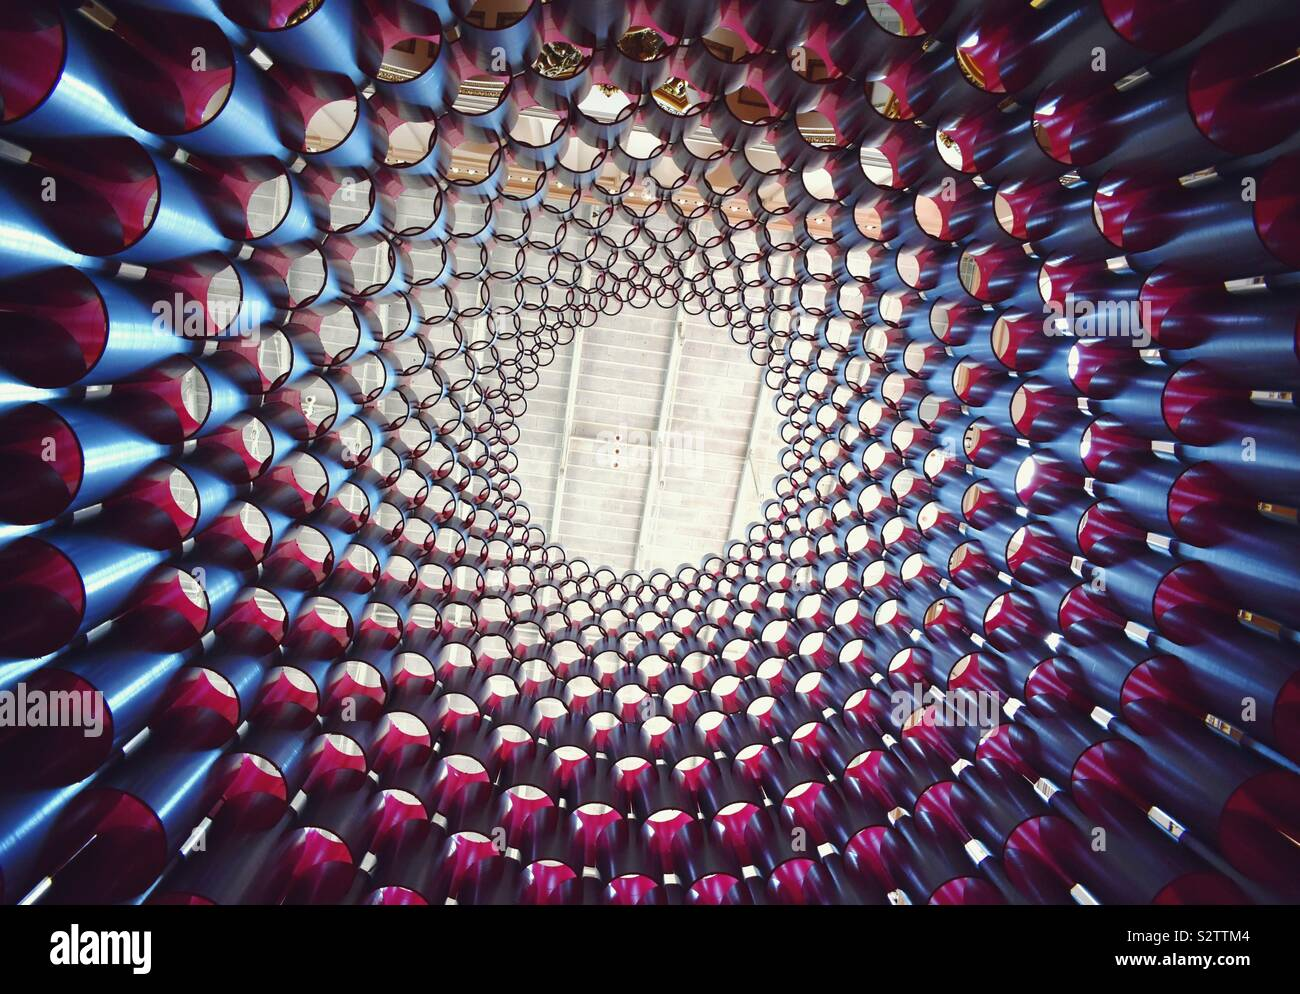 Hive Ausstellung im National Building Museum, Washington, DC Stockfoto